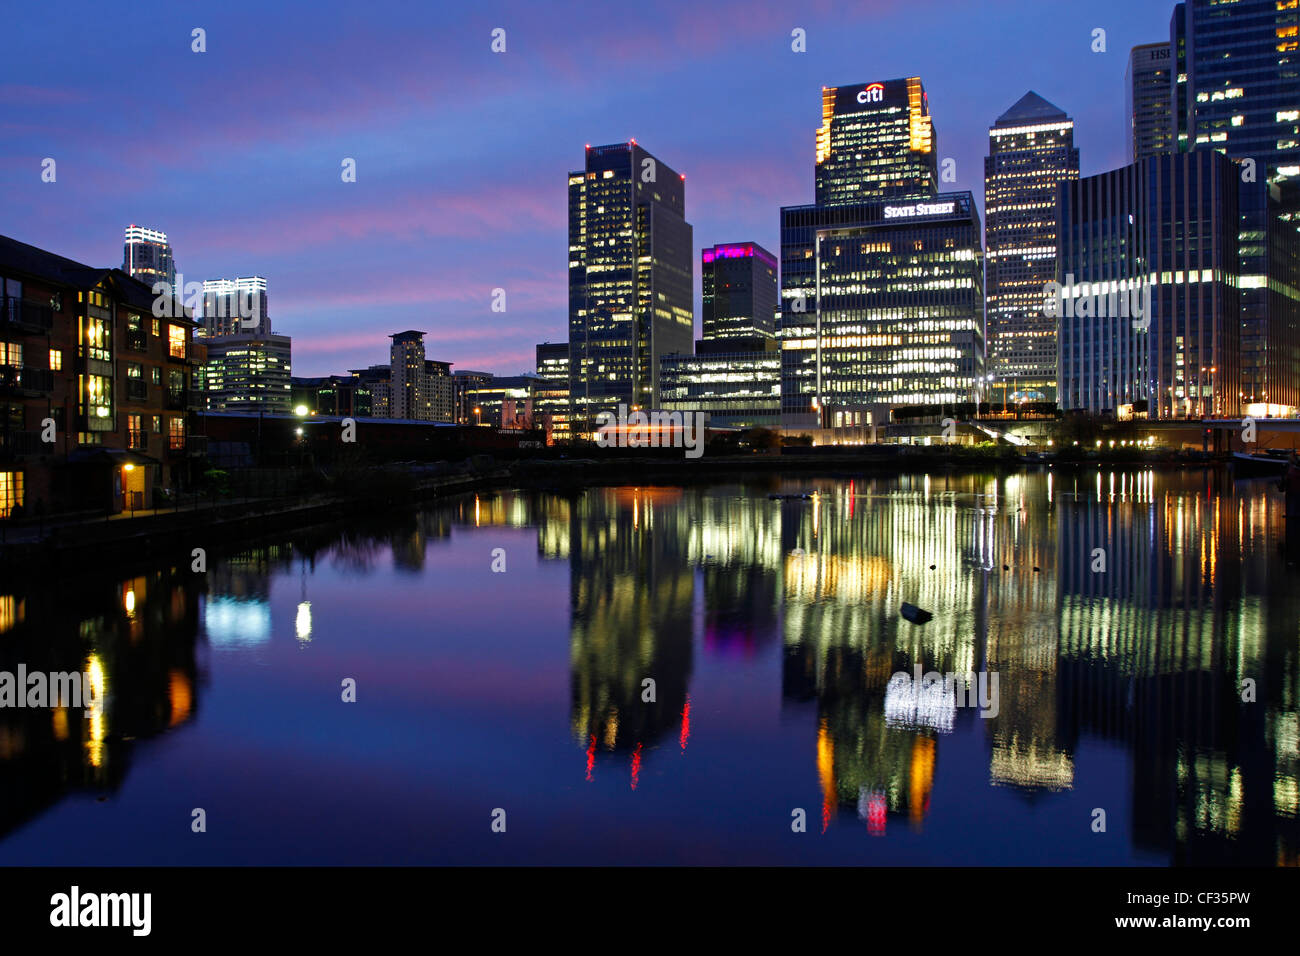 Skyscrapers at Canary Wharf illuminated at dusk. - Stock Image